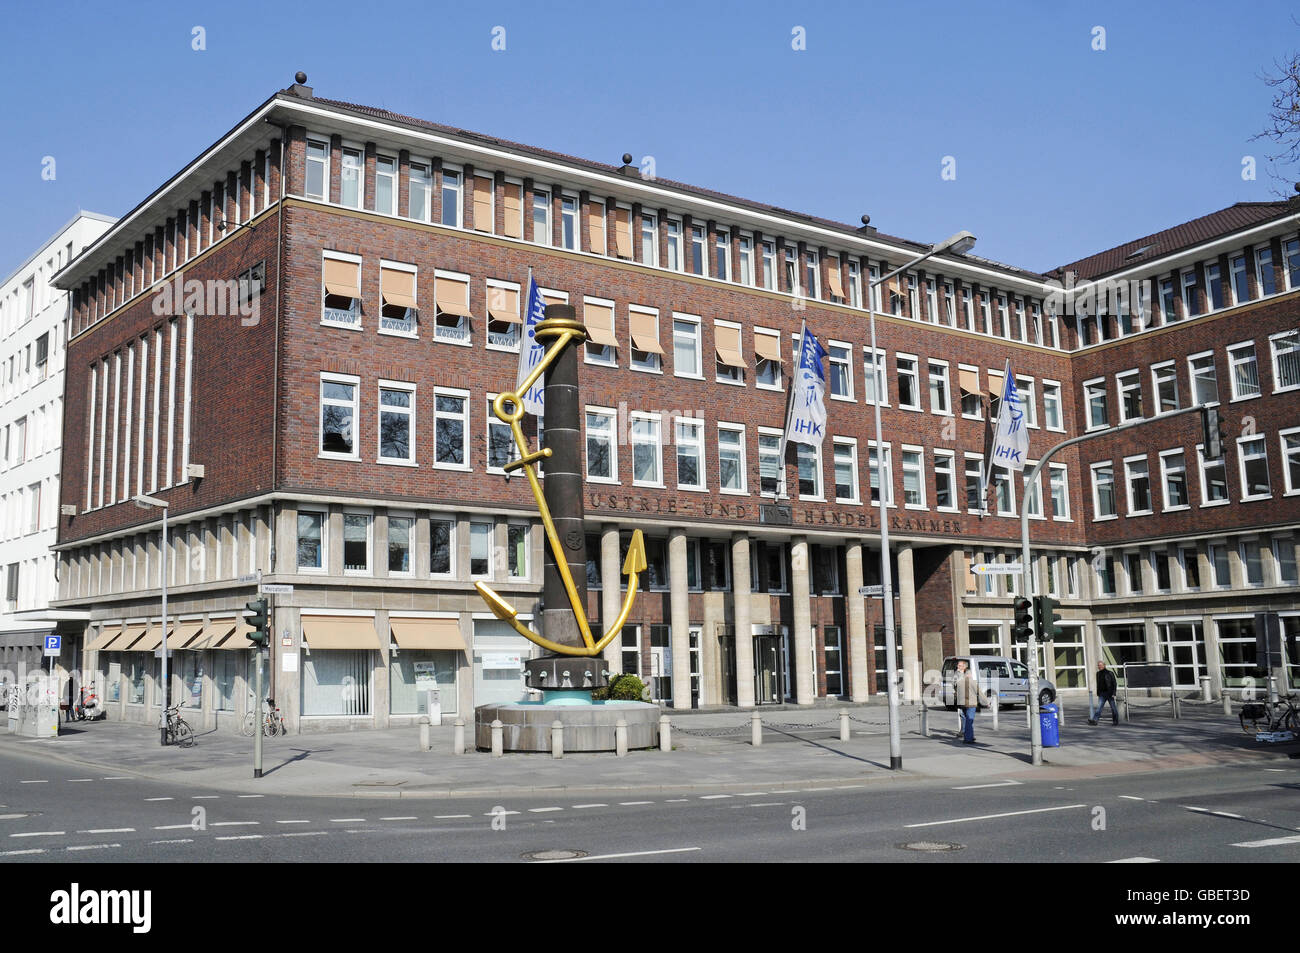 Golden Anchor, Lower Rhine Chamber of Commerce, Duisburg, North Rhine-Westphalia, Germany - Stock Image